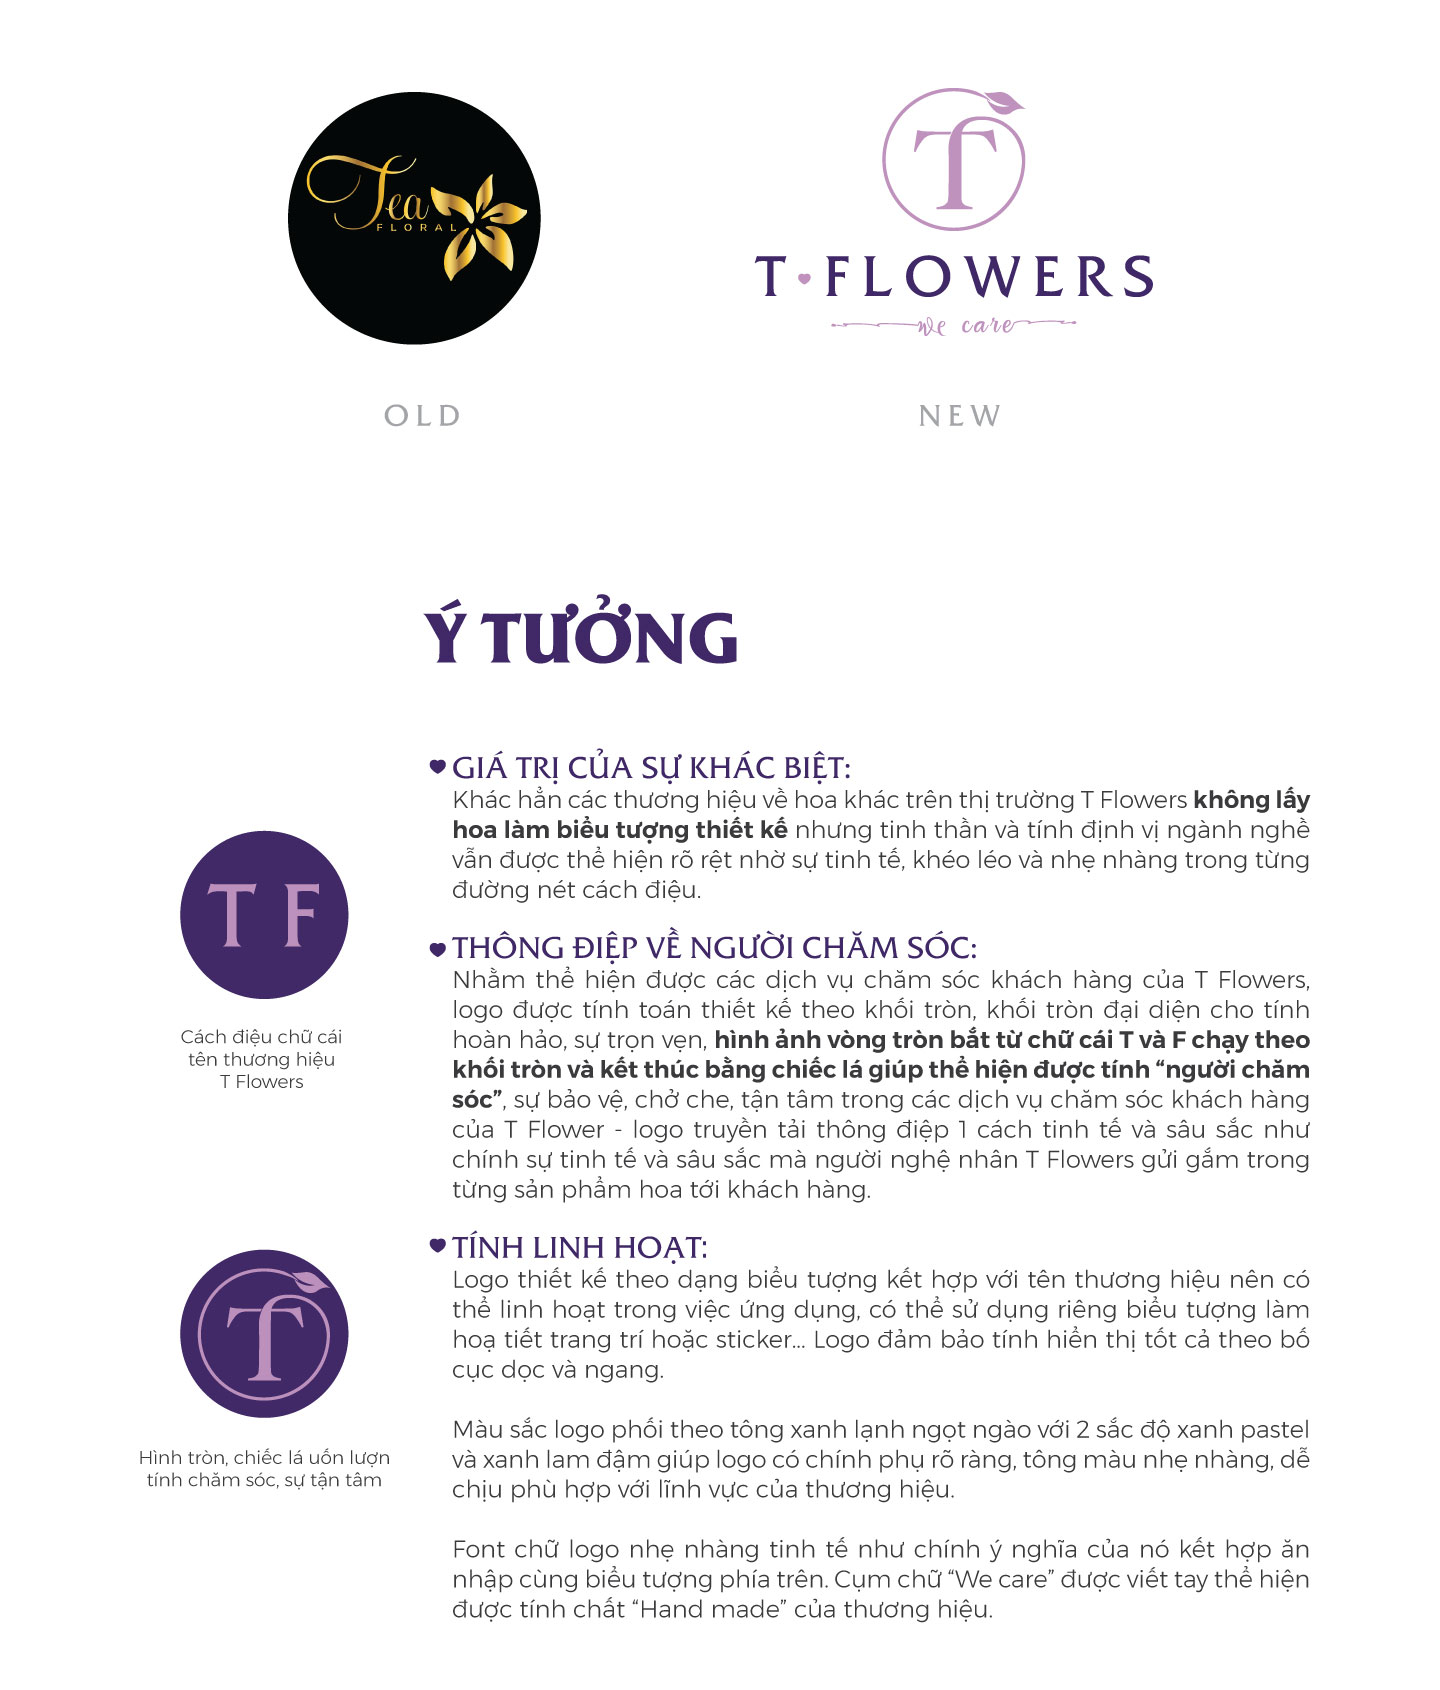 SHOWCASE-Tflowers2